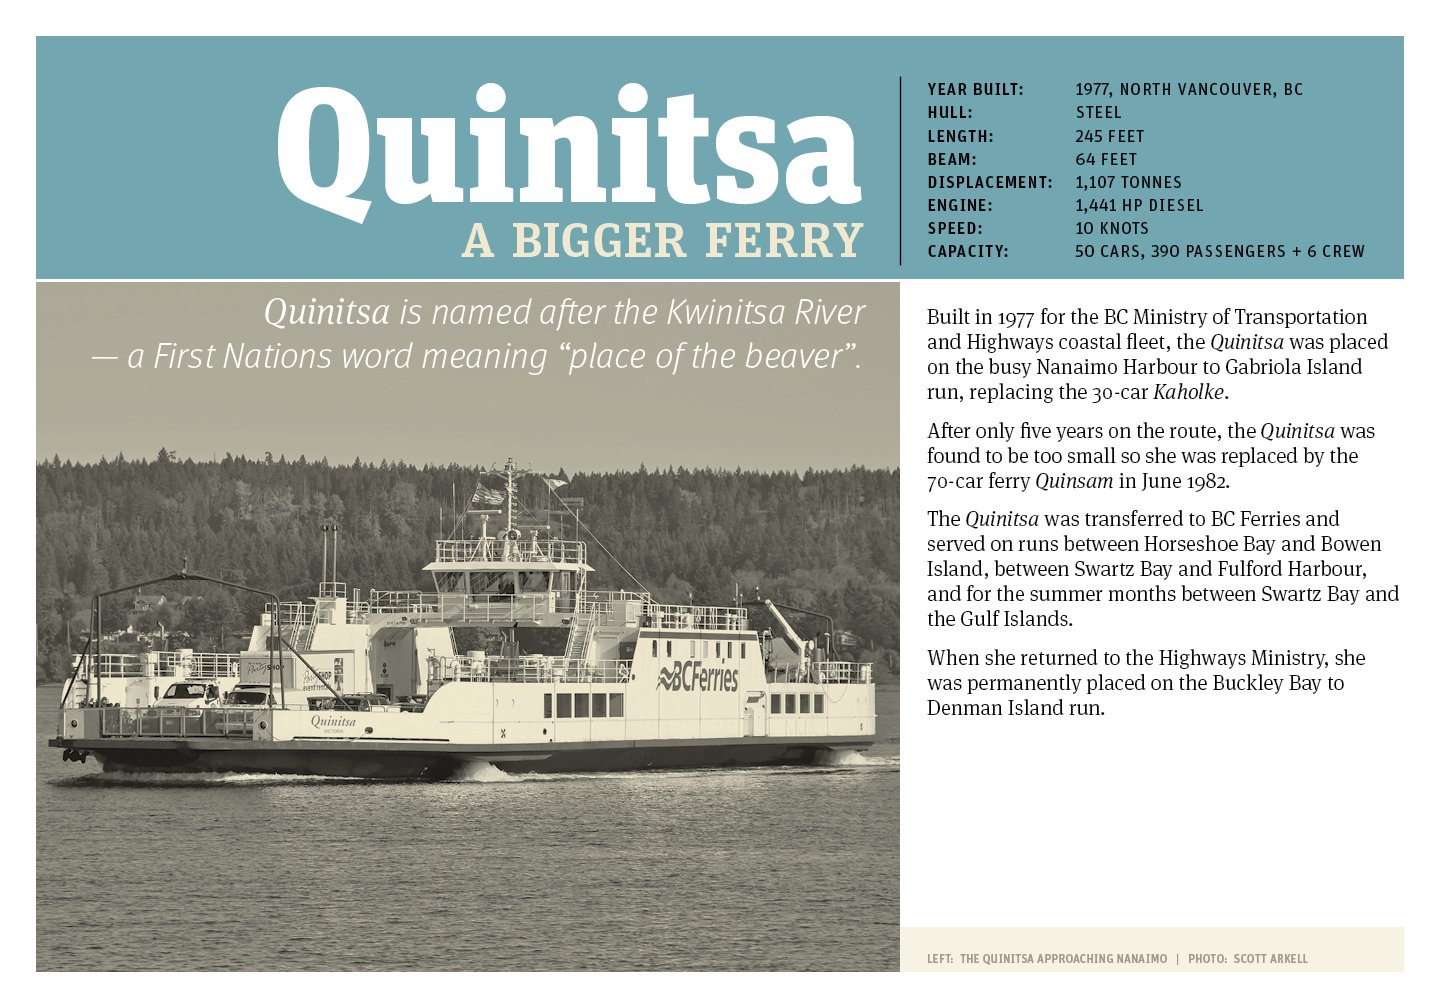 Poster of #4 Gabriola ferry, Quinitsa